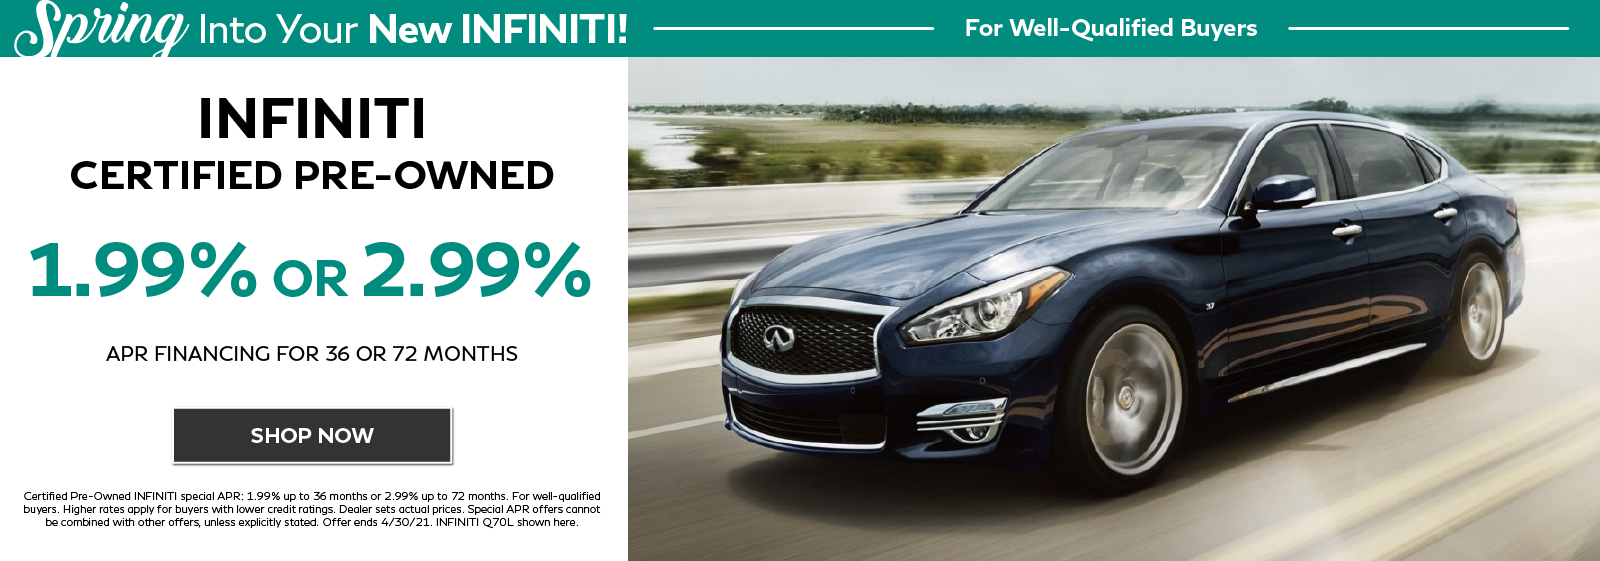 1.99% or 2.99% APR on all INFINITI Certified Pre-Owned. Click to shop now.